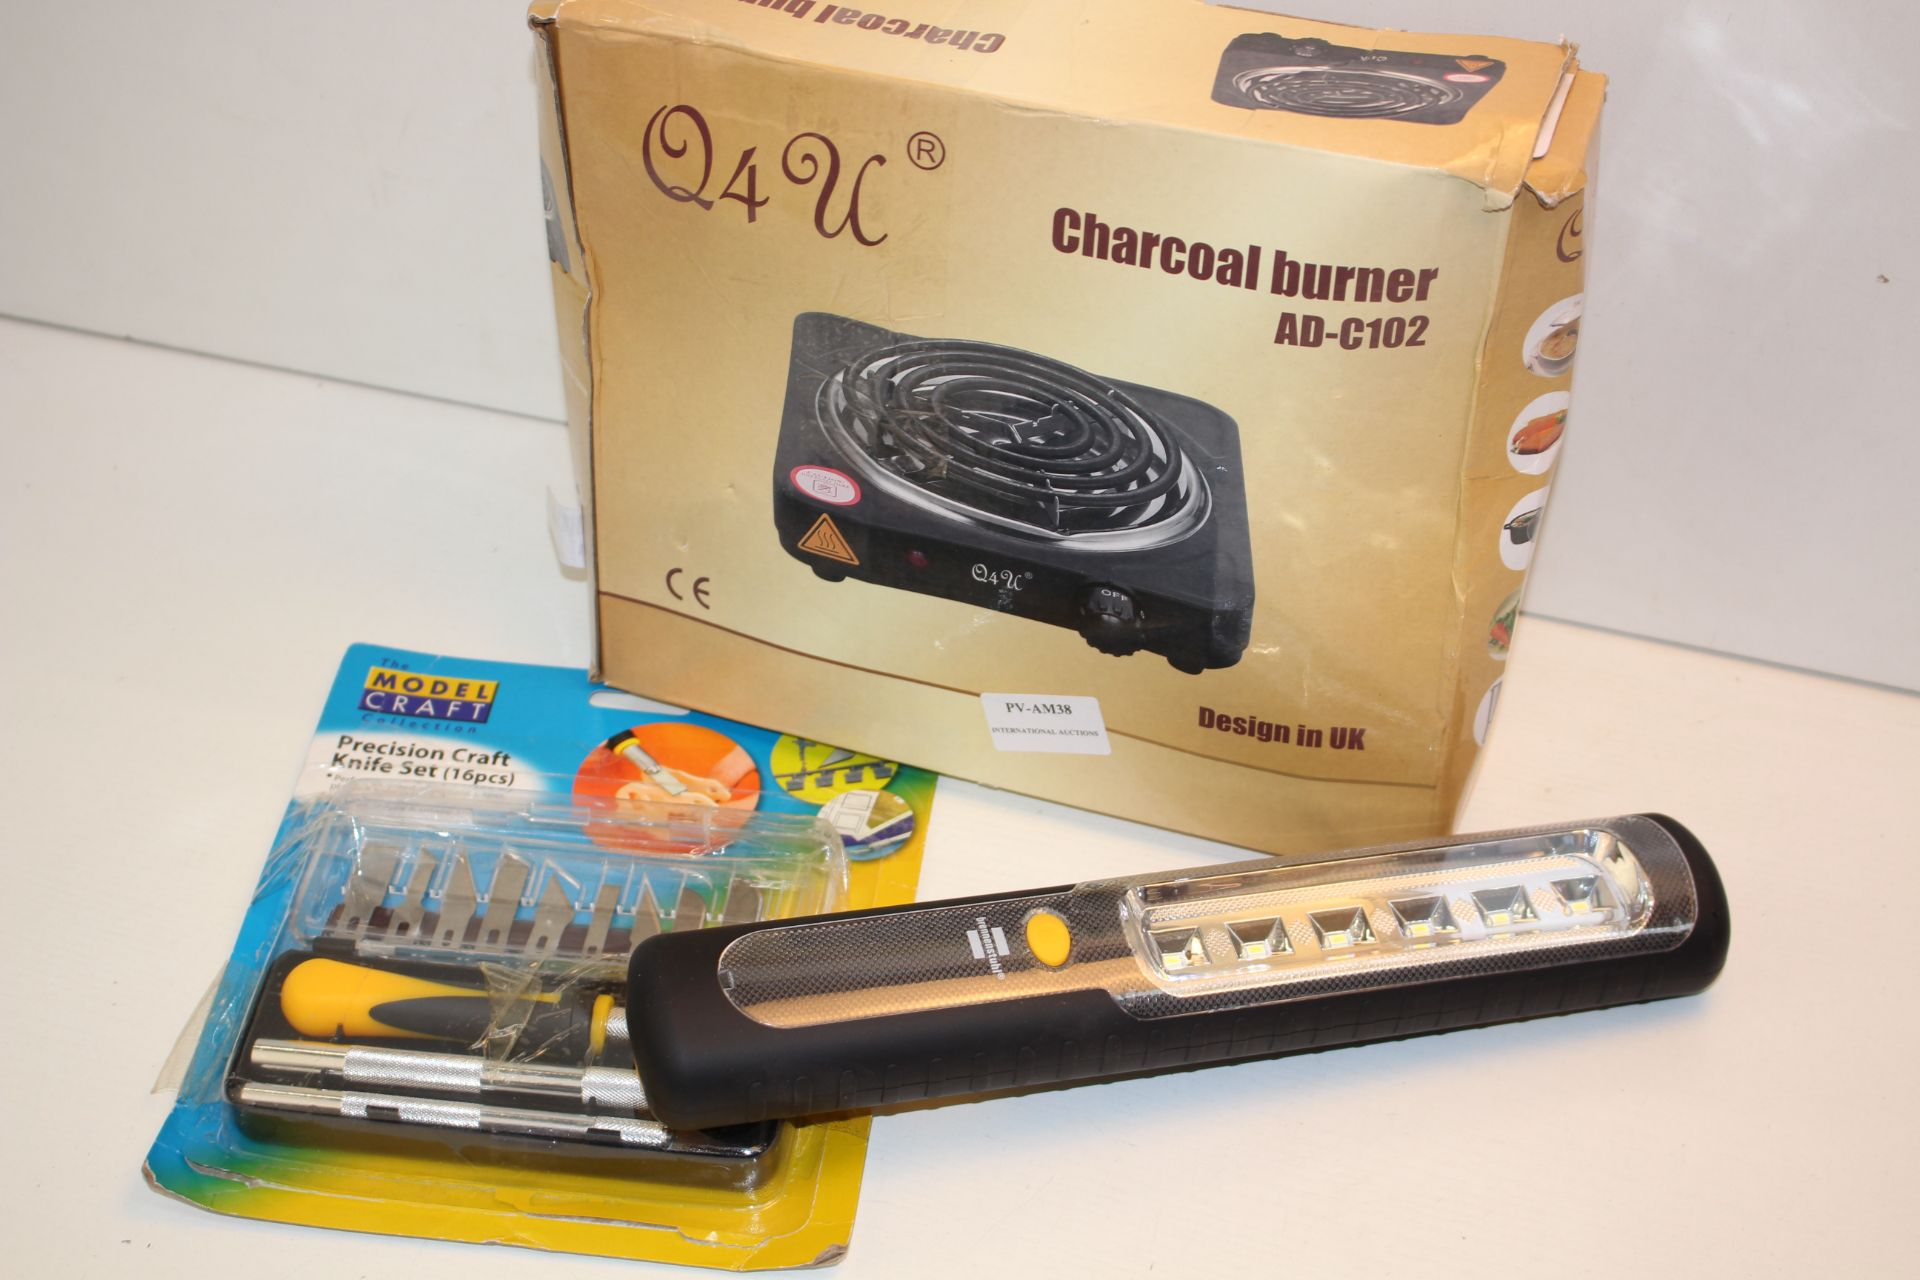 X3 ITEMS INCLUDING LIGHT, KNIFE SET ASND CHARCOAL BURNER Condition ReportAppraisal Available on